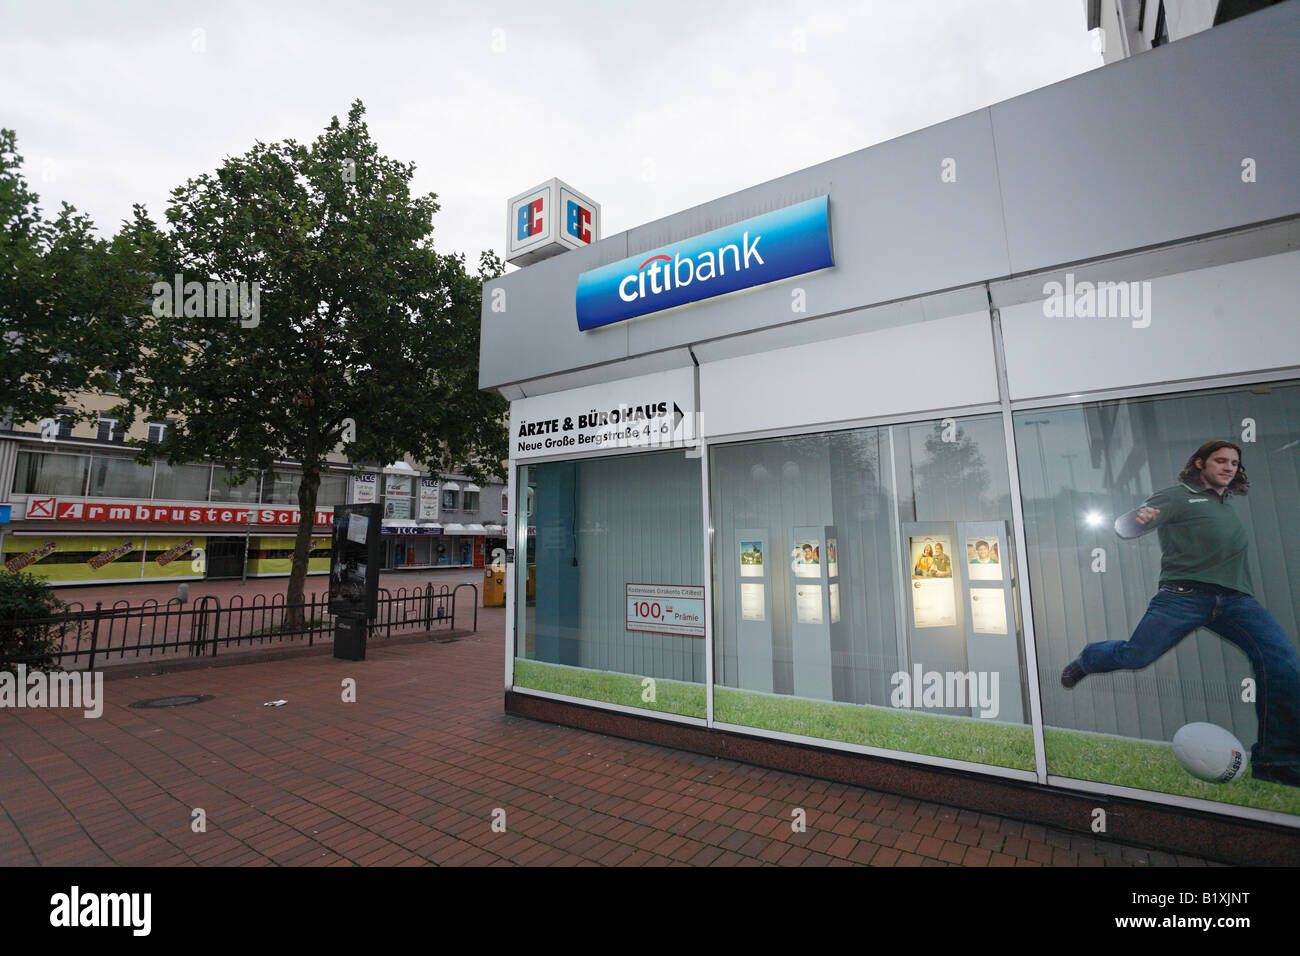 Citibank The Stock Photos Images Alamy Wiring Instructions For Office In Hamburg Germany Operates 340 Offices And Serves 33 Million Customers